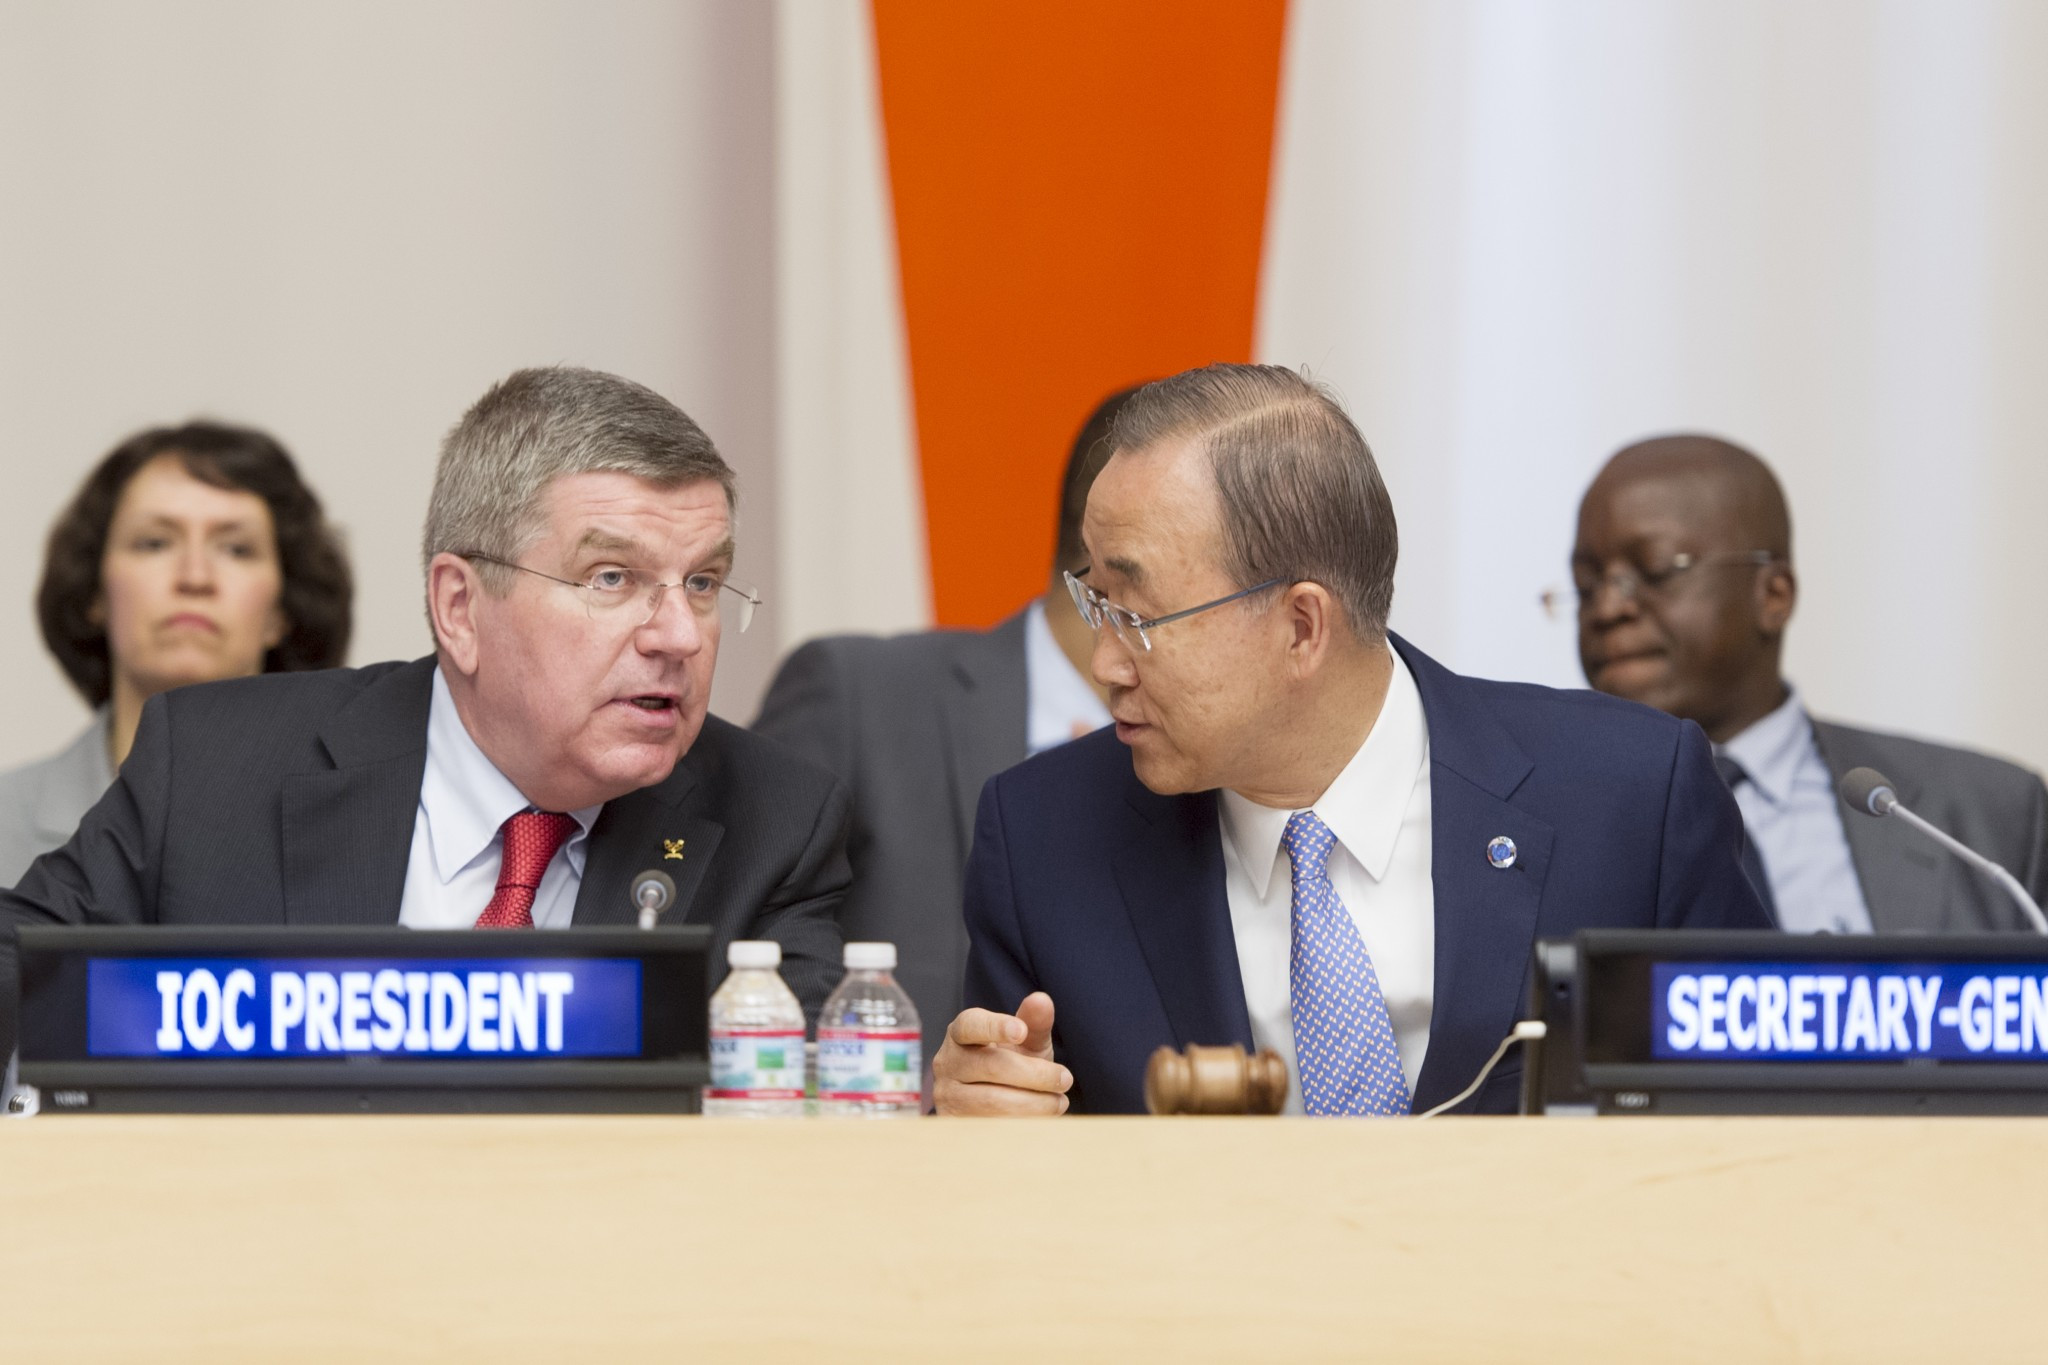 Thomas Bach told the UN that all people are equal in sport ©United Nations